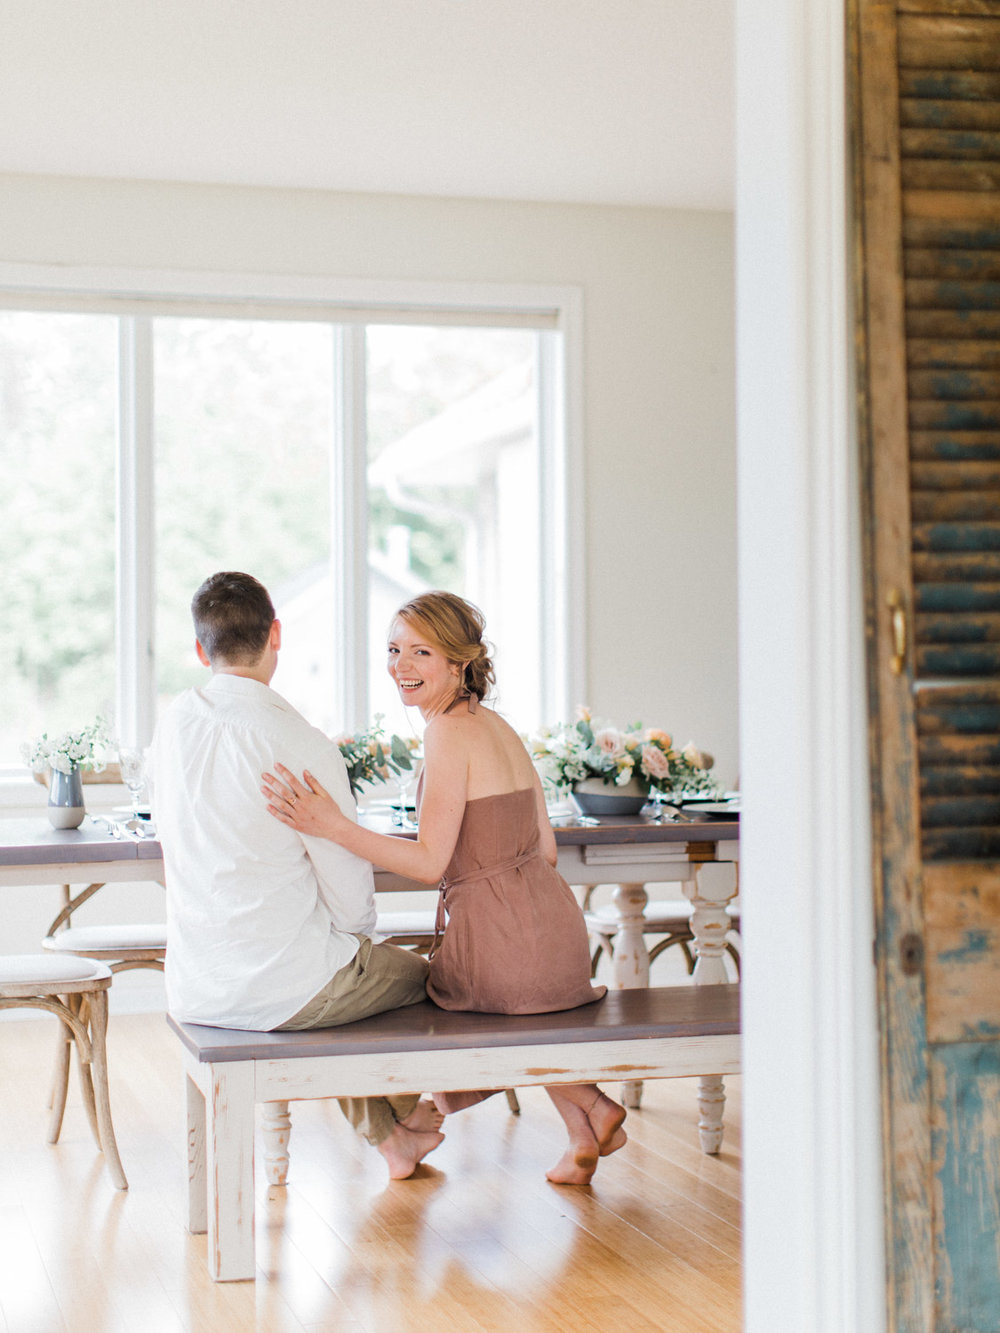 Collingwood Toronto Wedding Photographer At Home Engagement Session